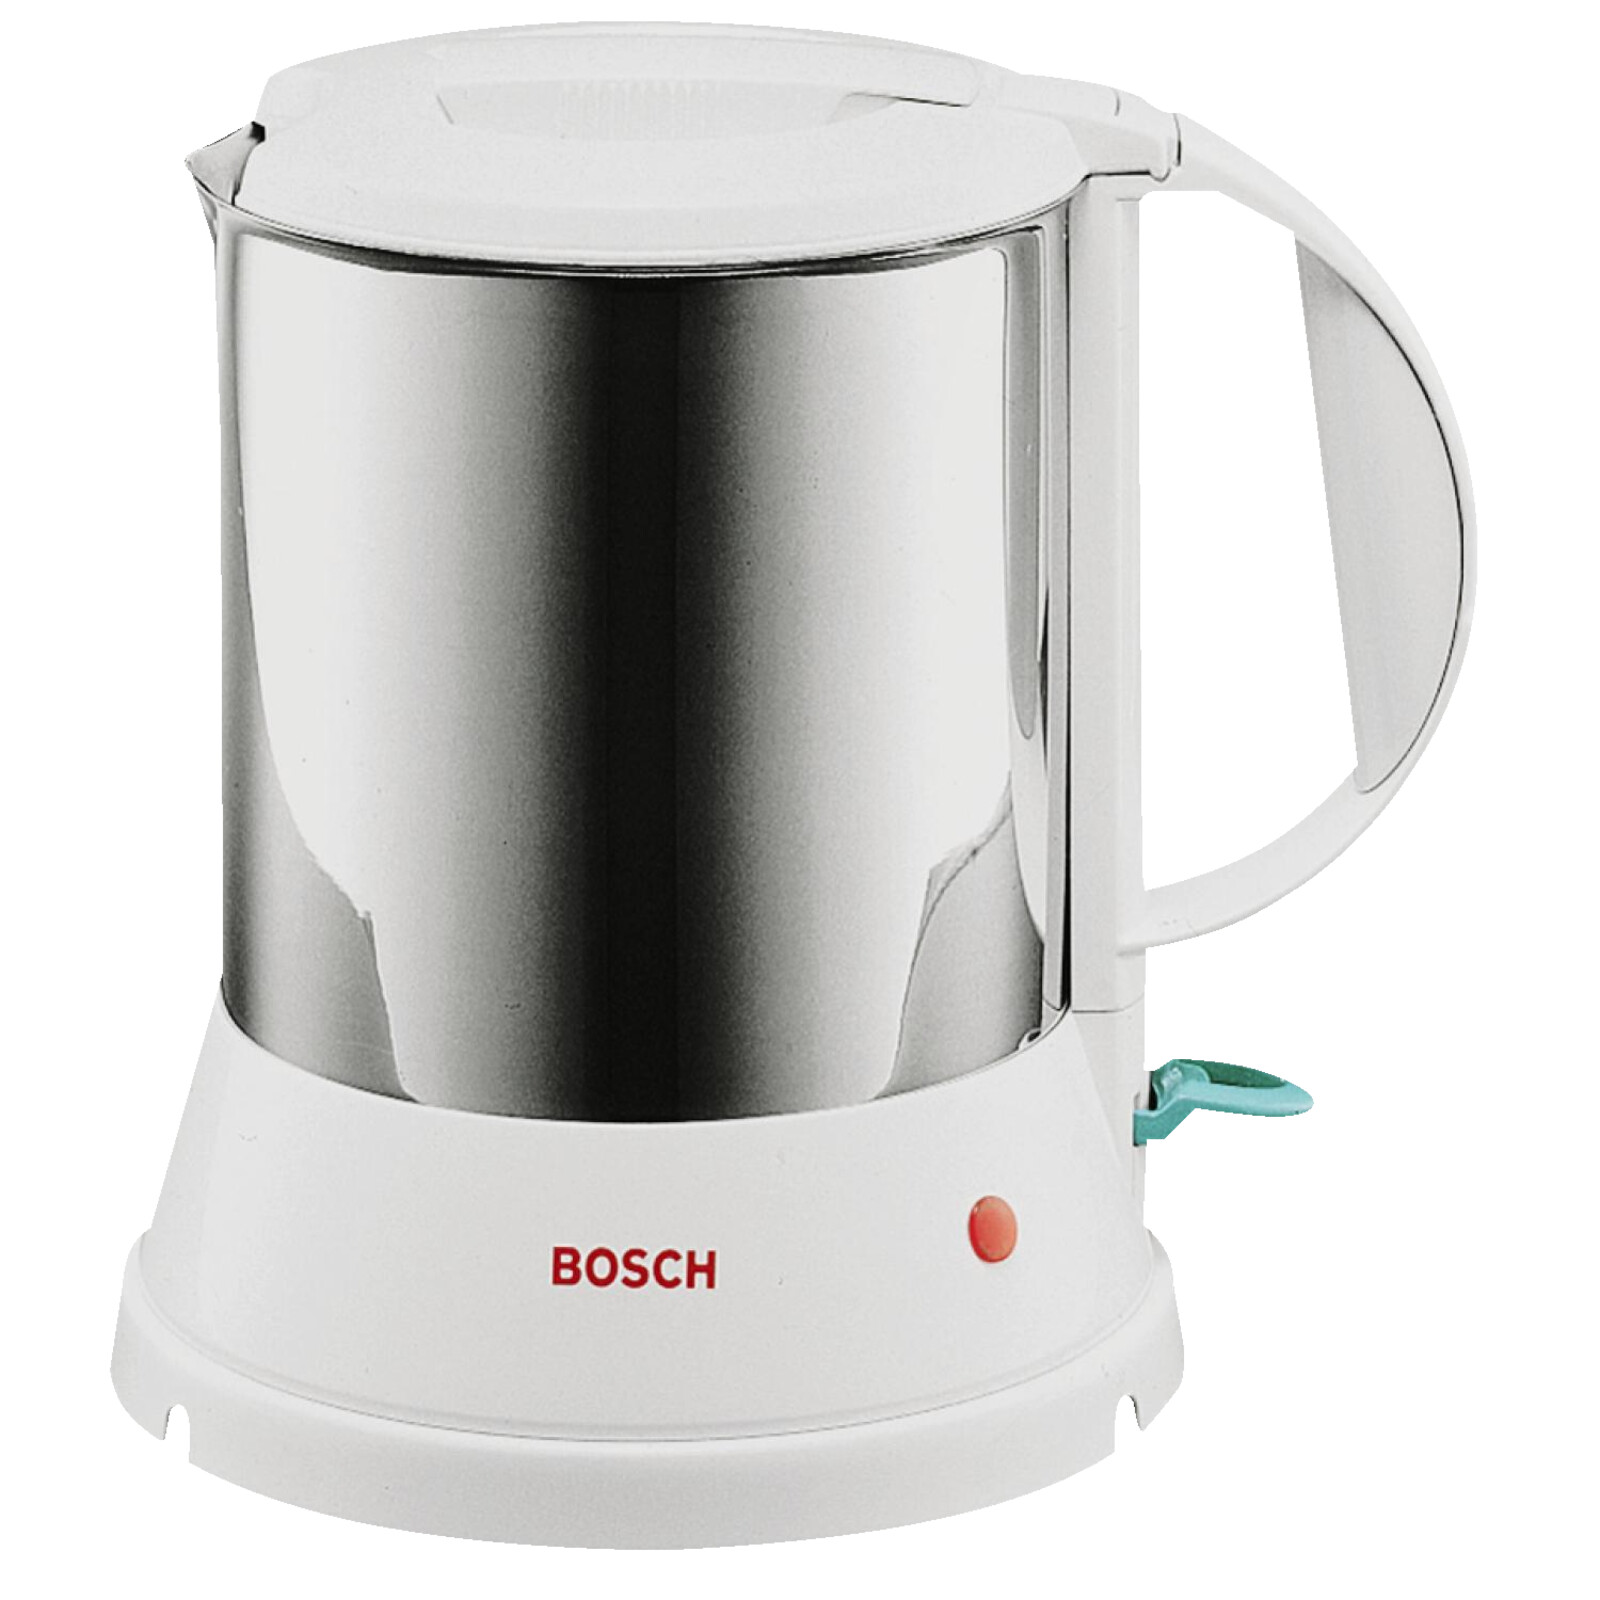 bosch twk 1201 n wasserkocher wei 1800 watt 1 7 liter ebay. Black Bedroom Furniture Sets. Home Design Ideas